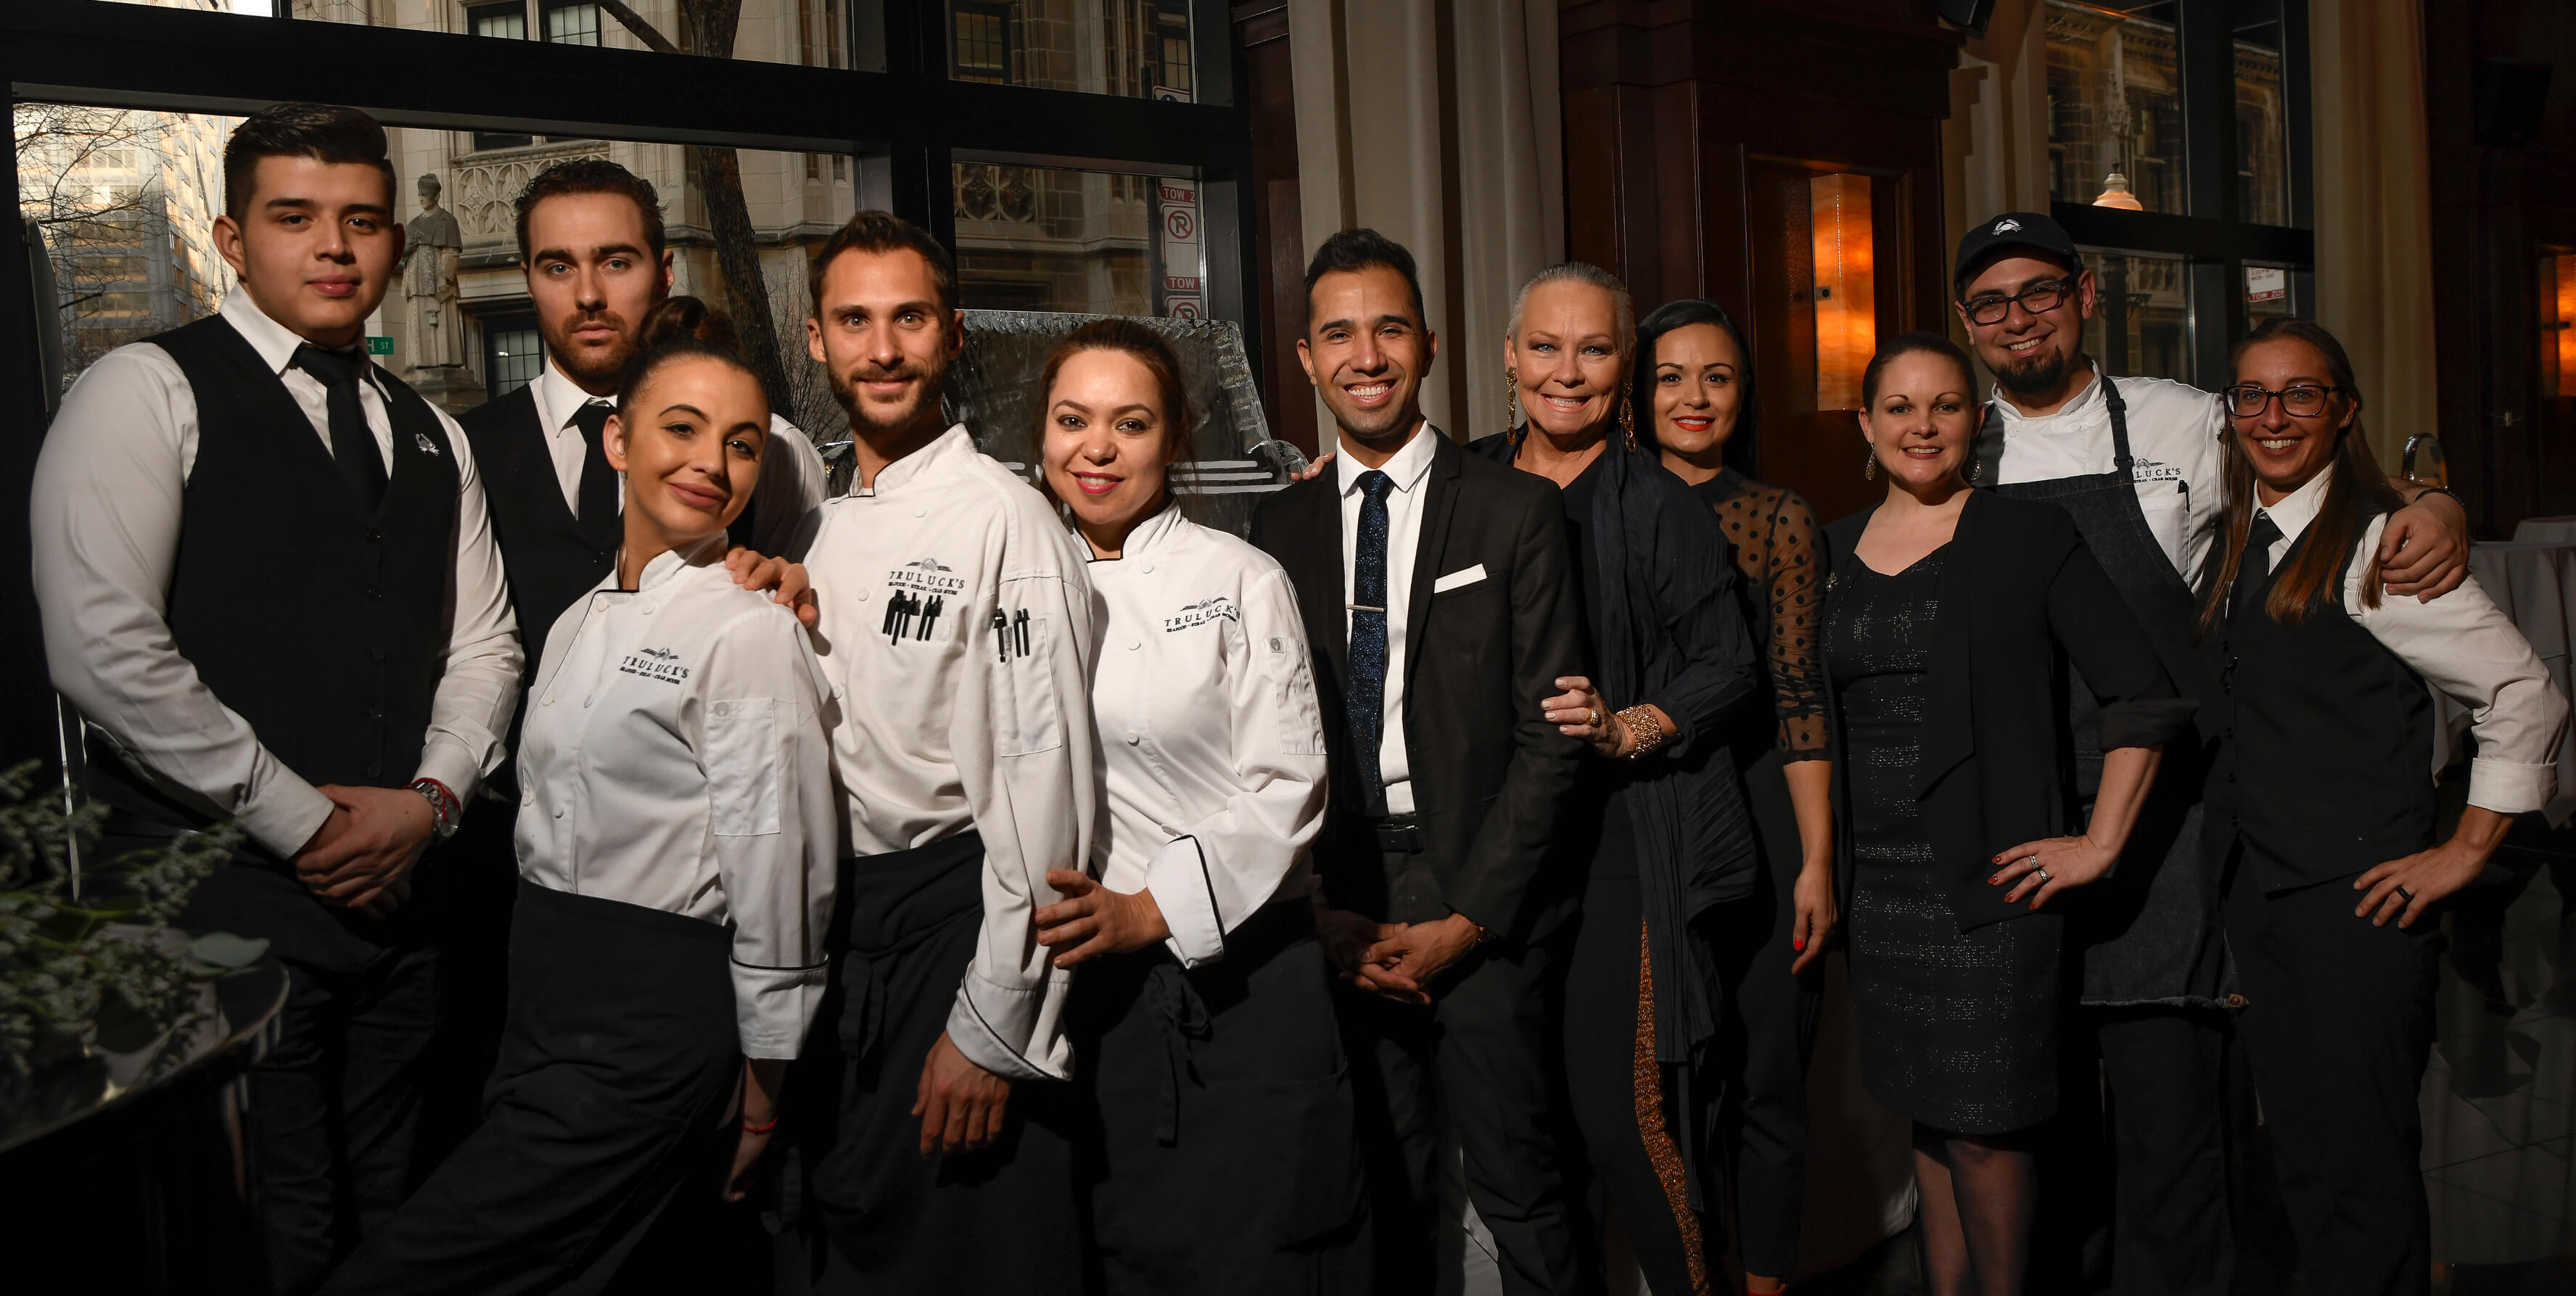 picture of Our kitchen and front of house staff, smiling confidently together